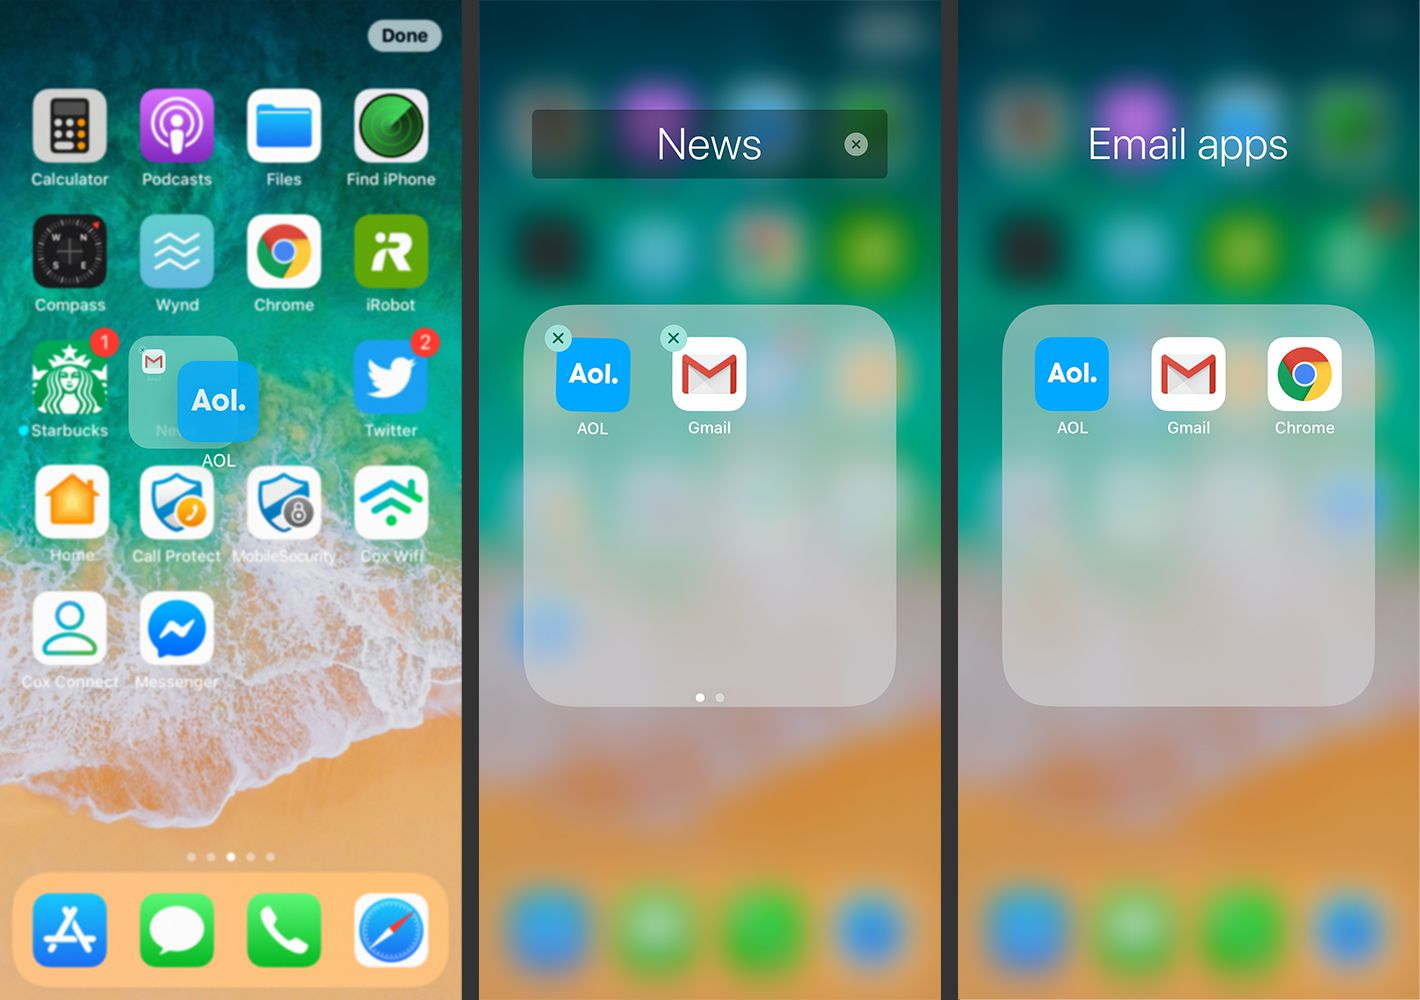 How to Manage Apps on the iPhone Home Screen